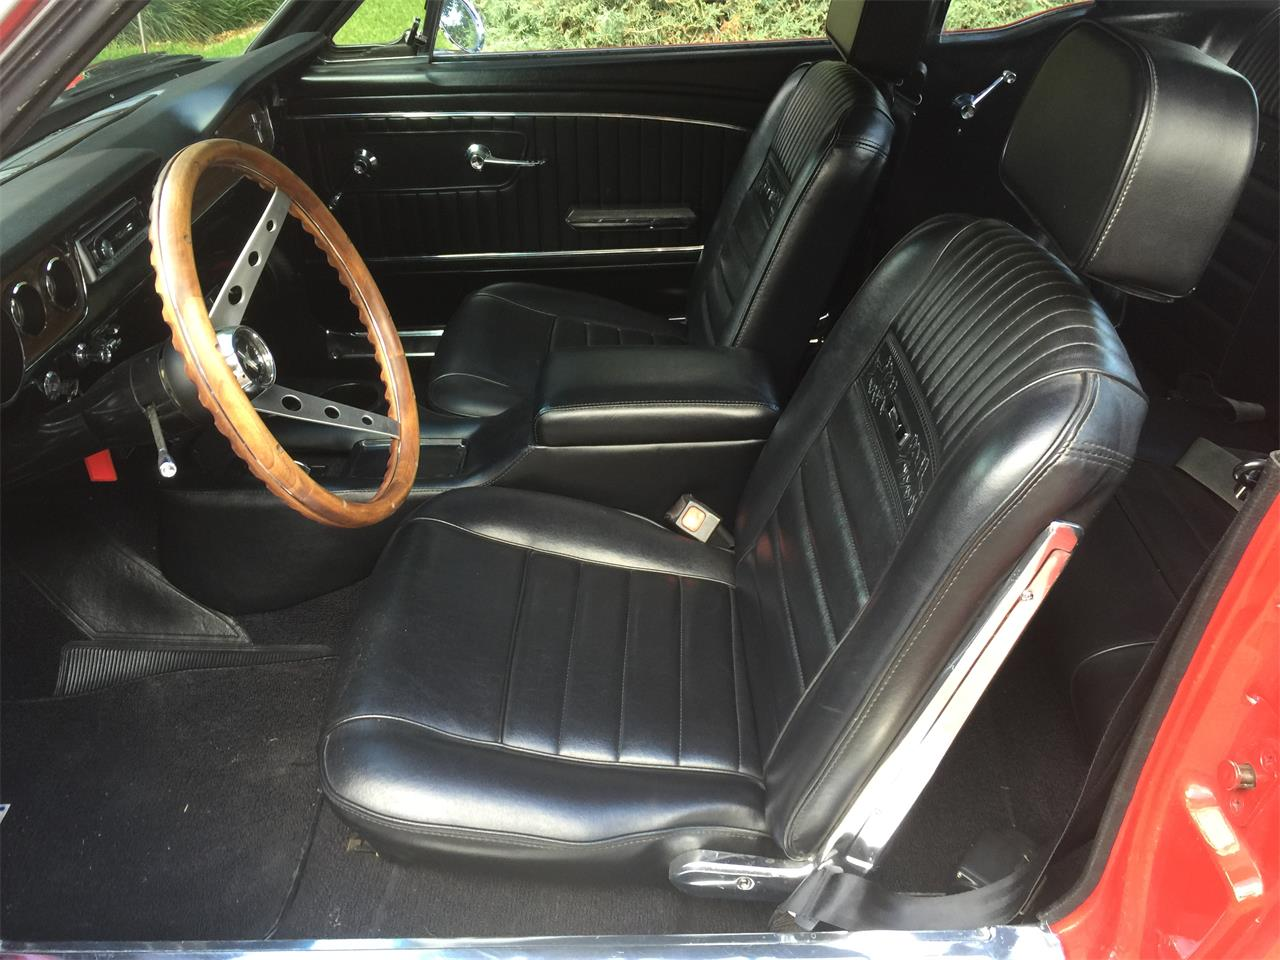 Large Picture of Classic '65 Ford Mustang located in Bakersfield California - $24,000.00 - MOJX